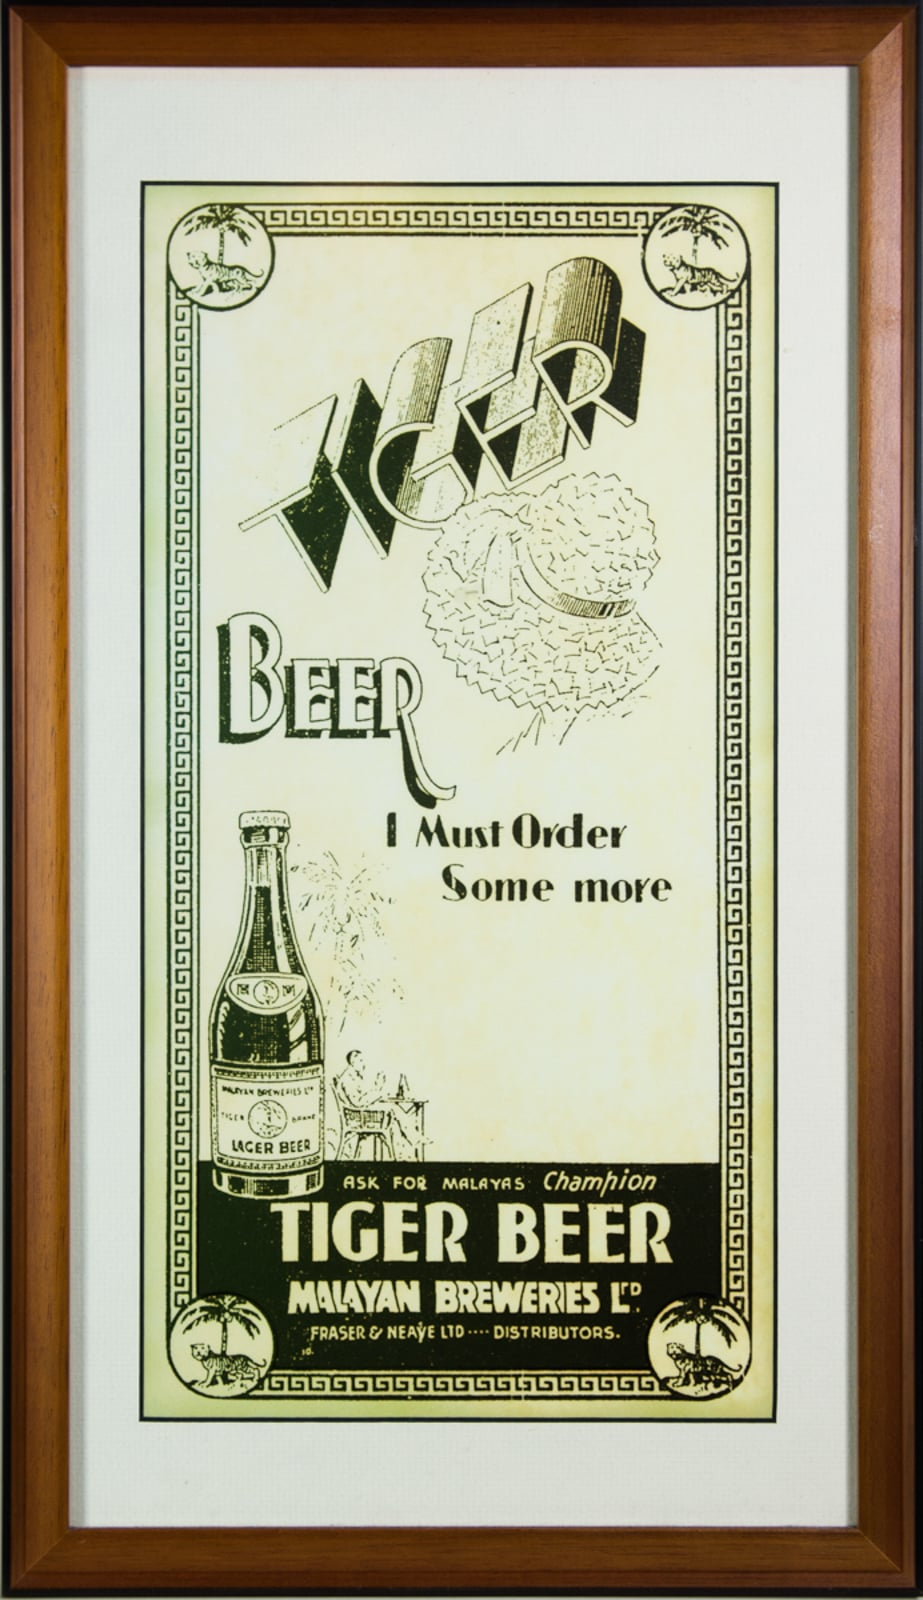 Tiger Beer Malayan Breweries Advertisement